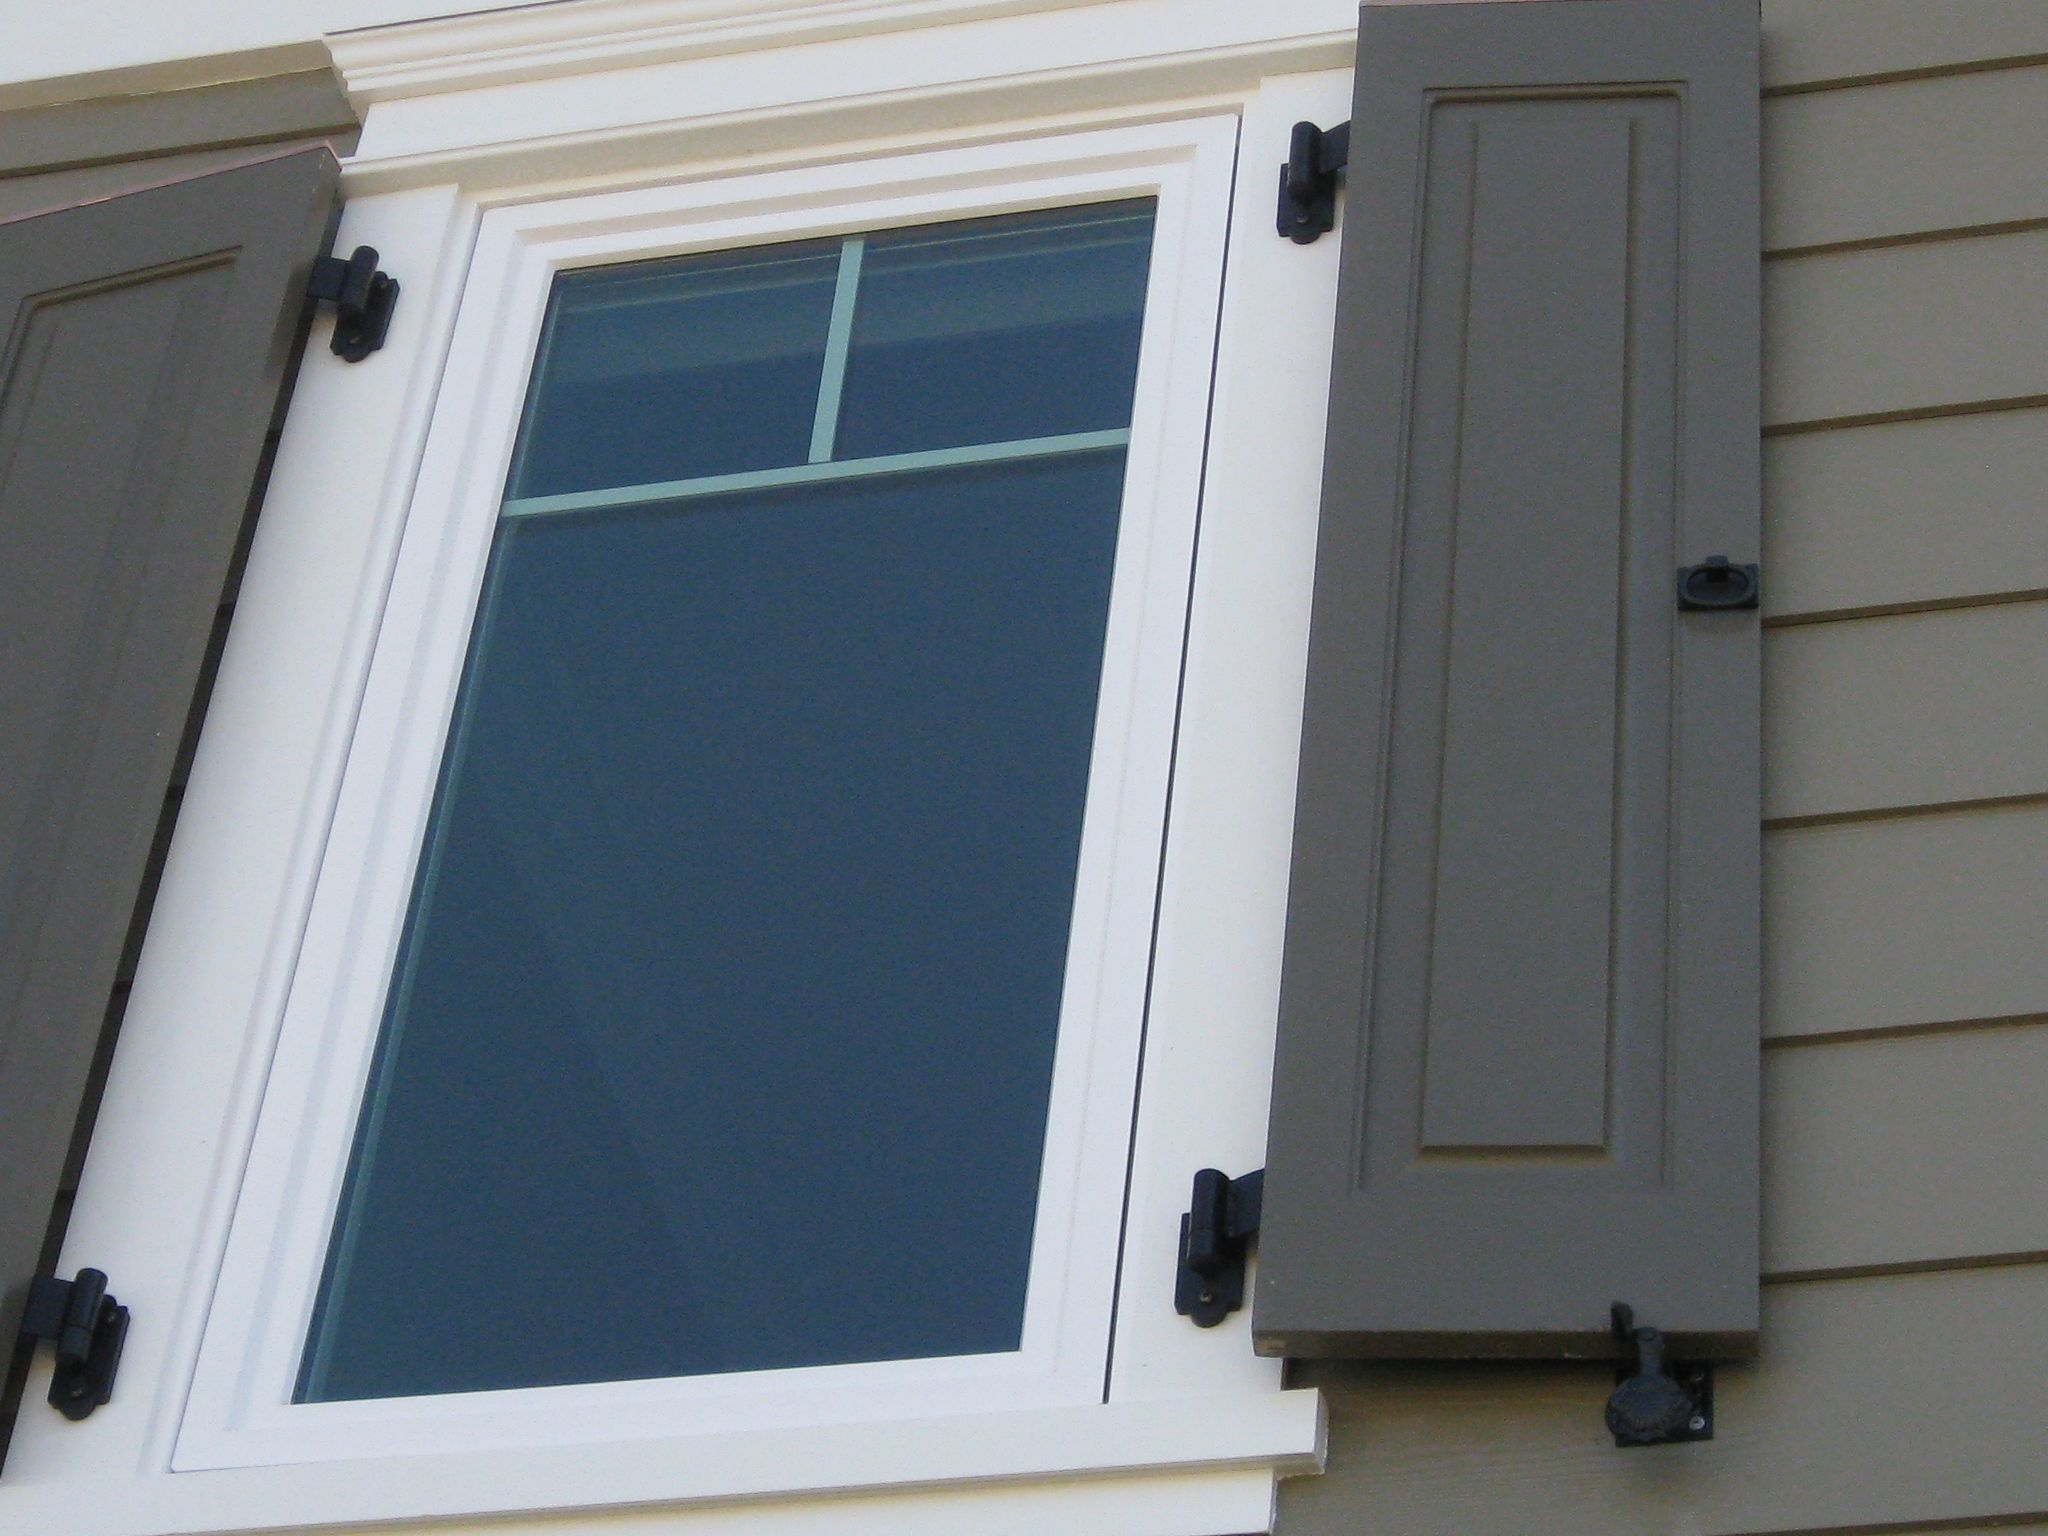 Close Up Of The Windows Shutters And Lynn Cove Hardware This Project Used Carbon Steel Shutter Hinges Pintels Shims For Pintles